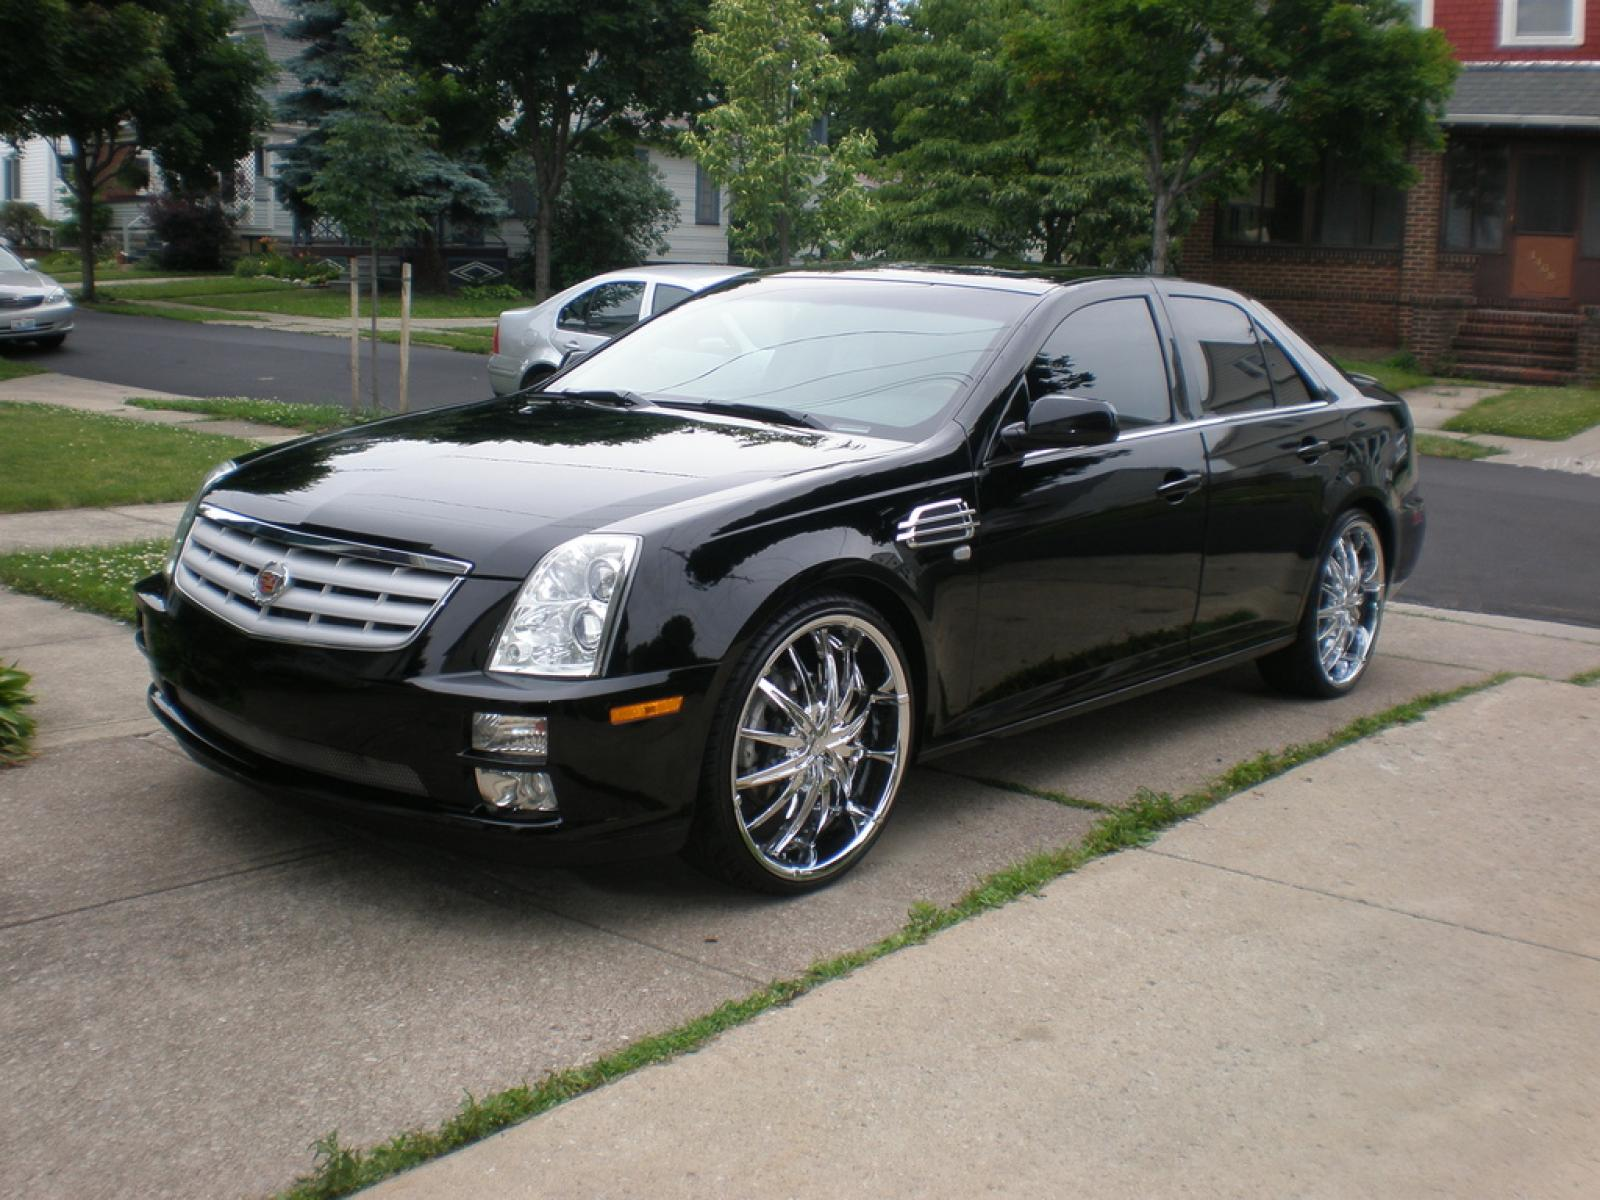 2005 cadillac sts information and photos zombiedrive. Black Bedroom Furniture Sets. Home Design Ideas